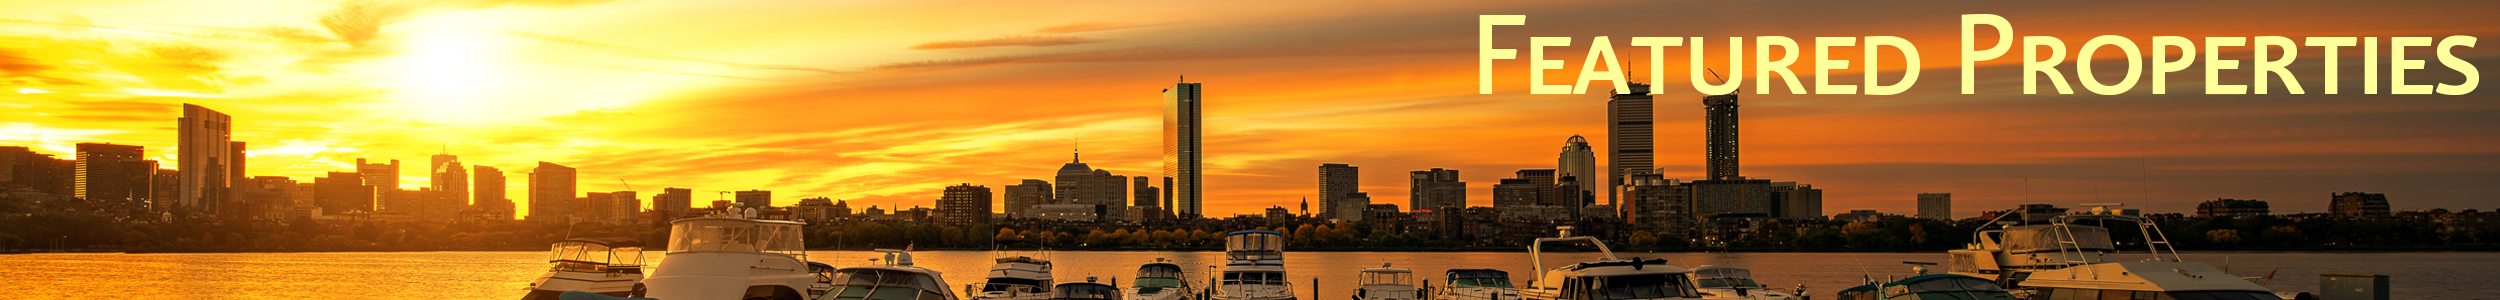 Boston harbor with Featured Properties are on a bright green background